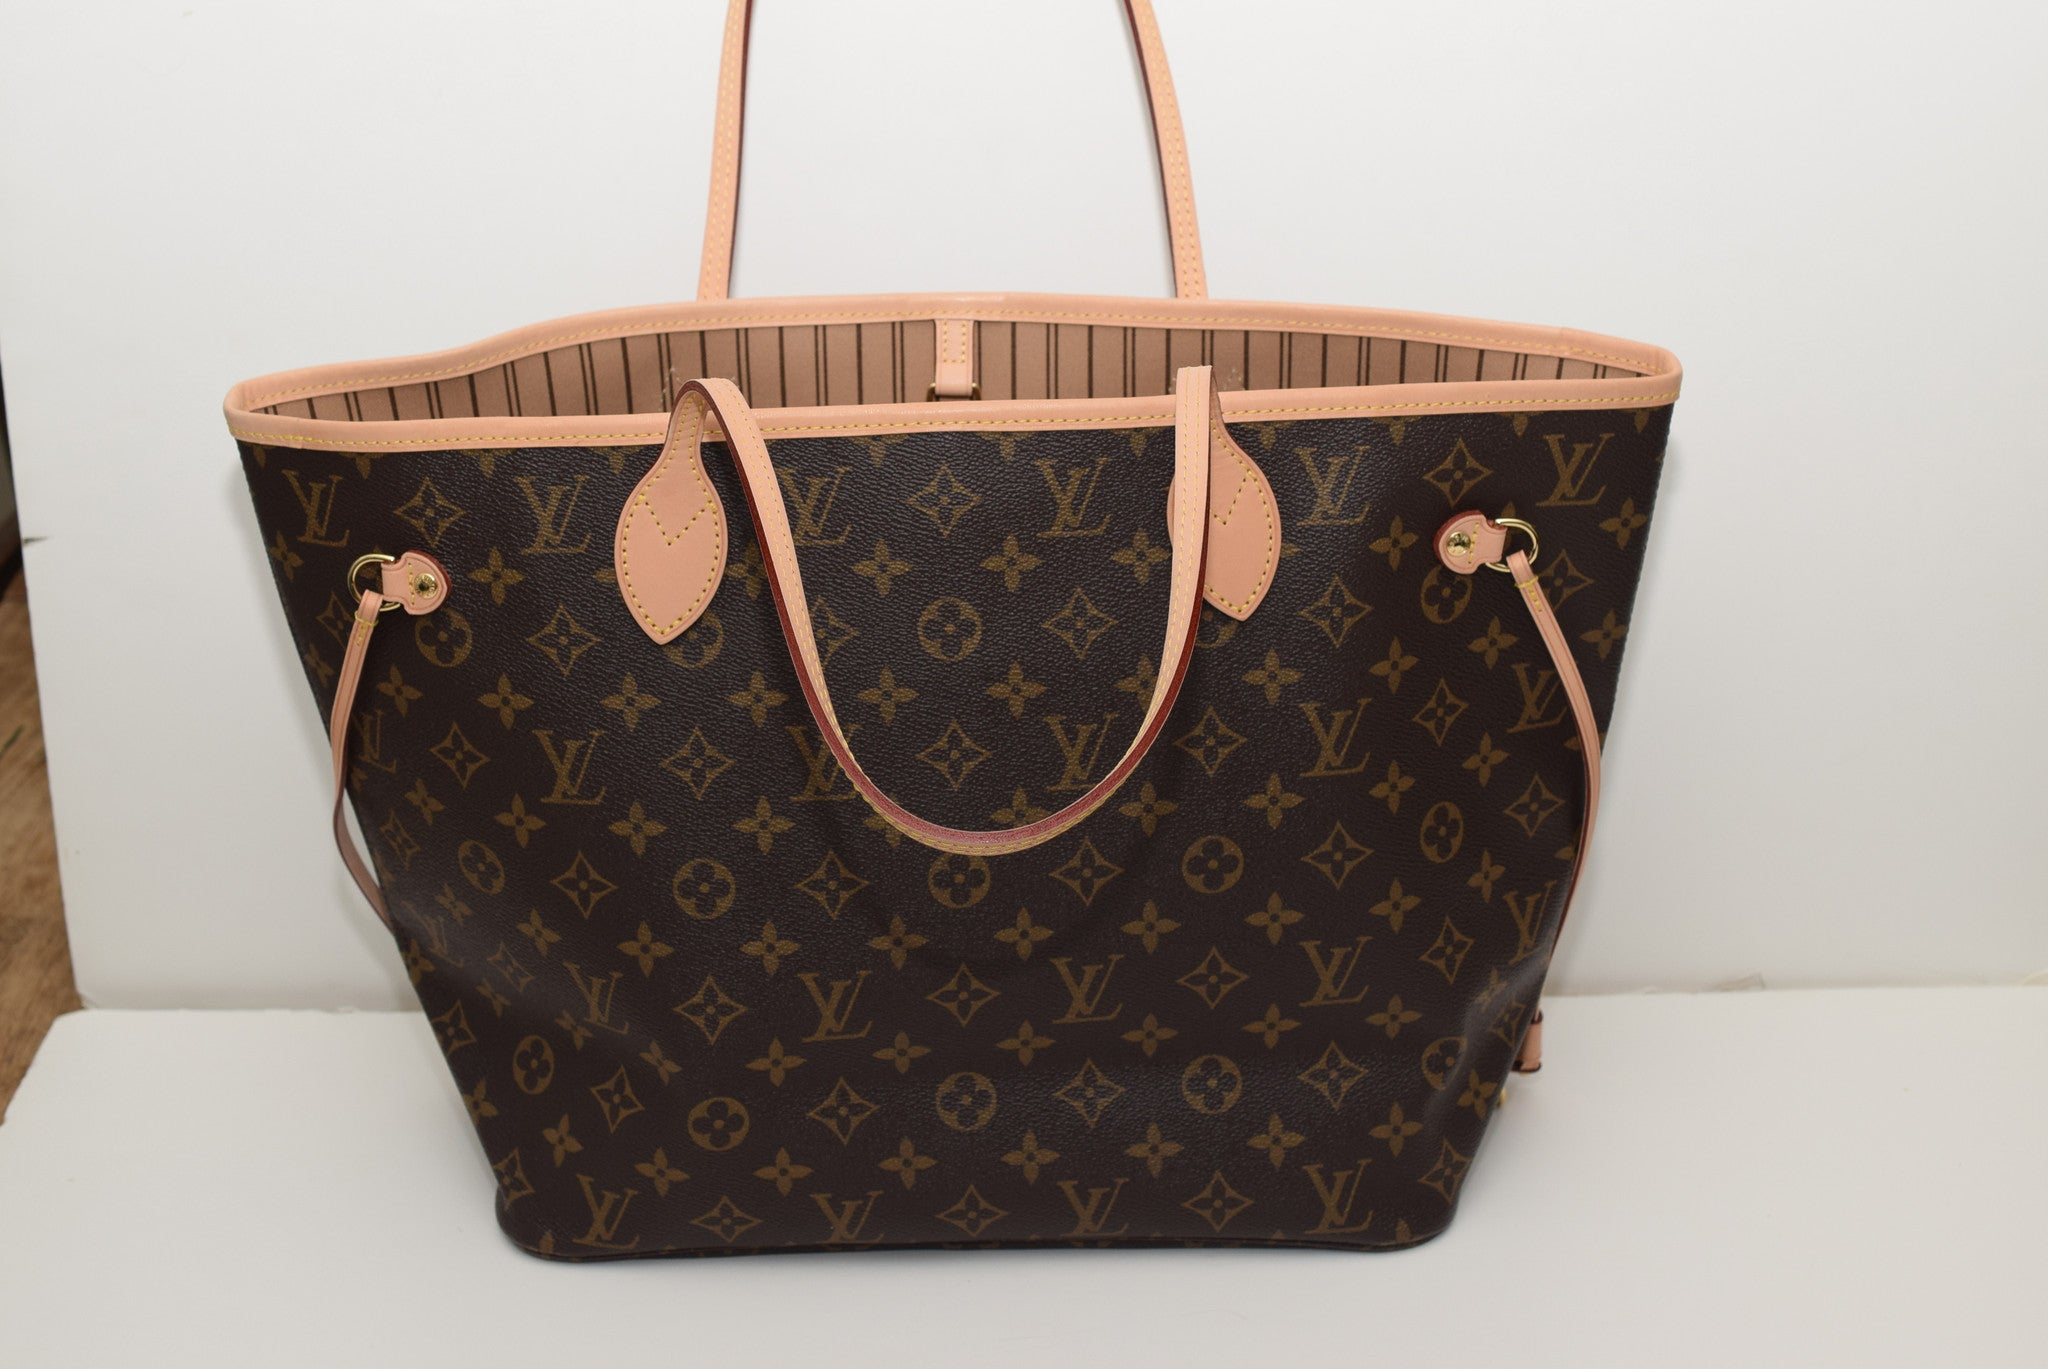 ac0a98871af6 Write a review. Name. Email. Rating. Review Title. Body of Review (1500). LOUIS  VUITTON Brand New!!! Never Worn Neverfull Mm In Lining - Date Code ...